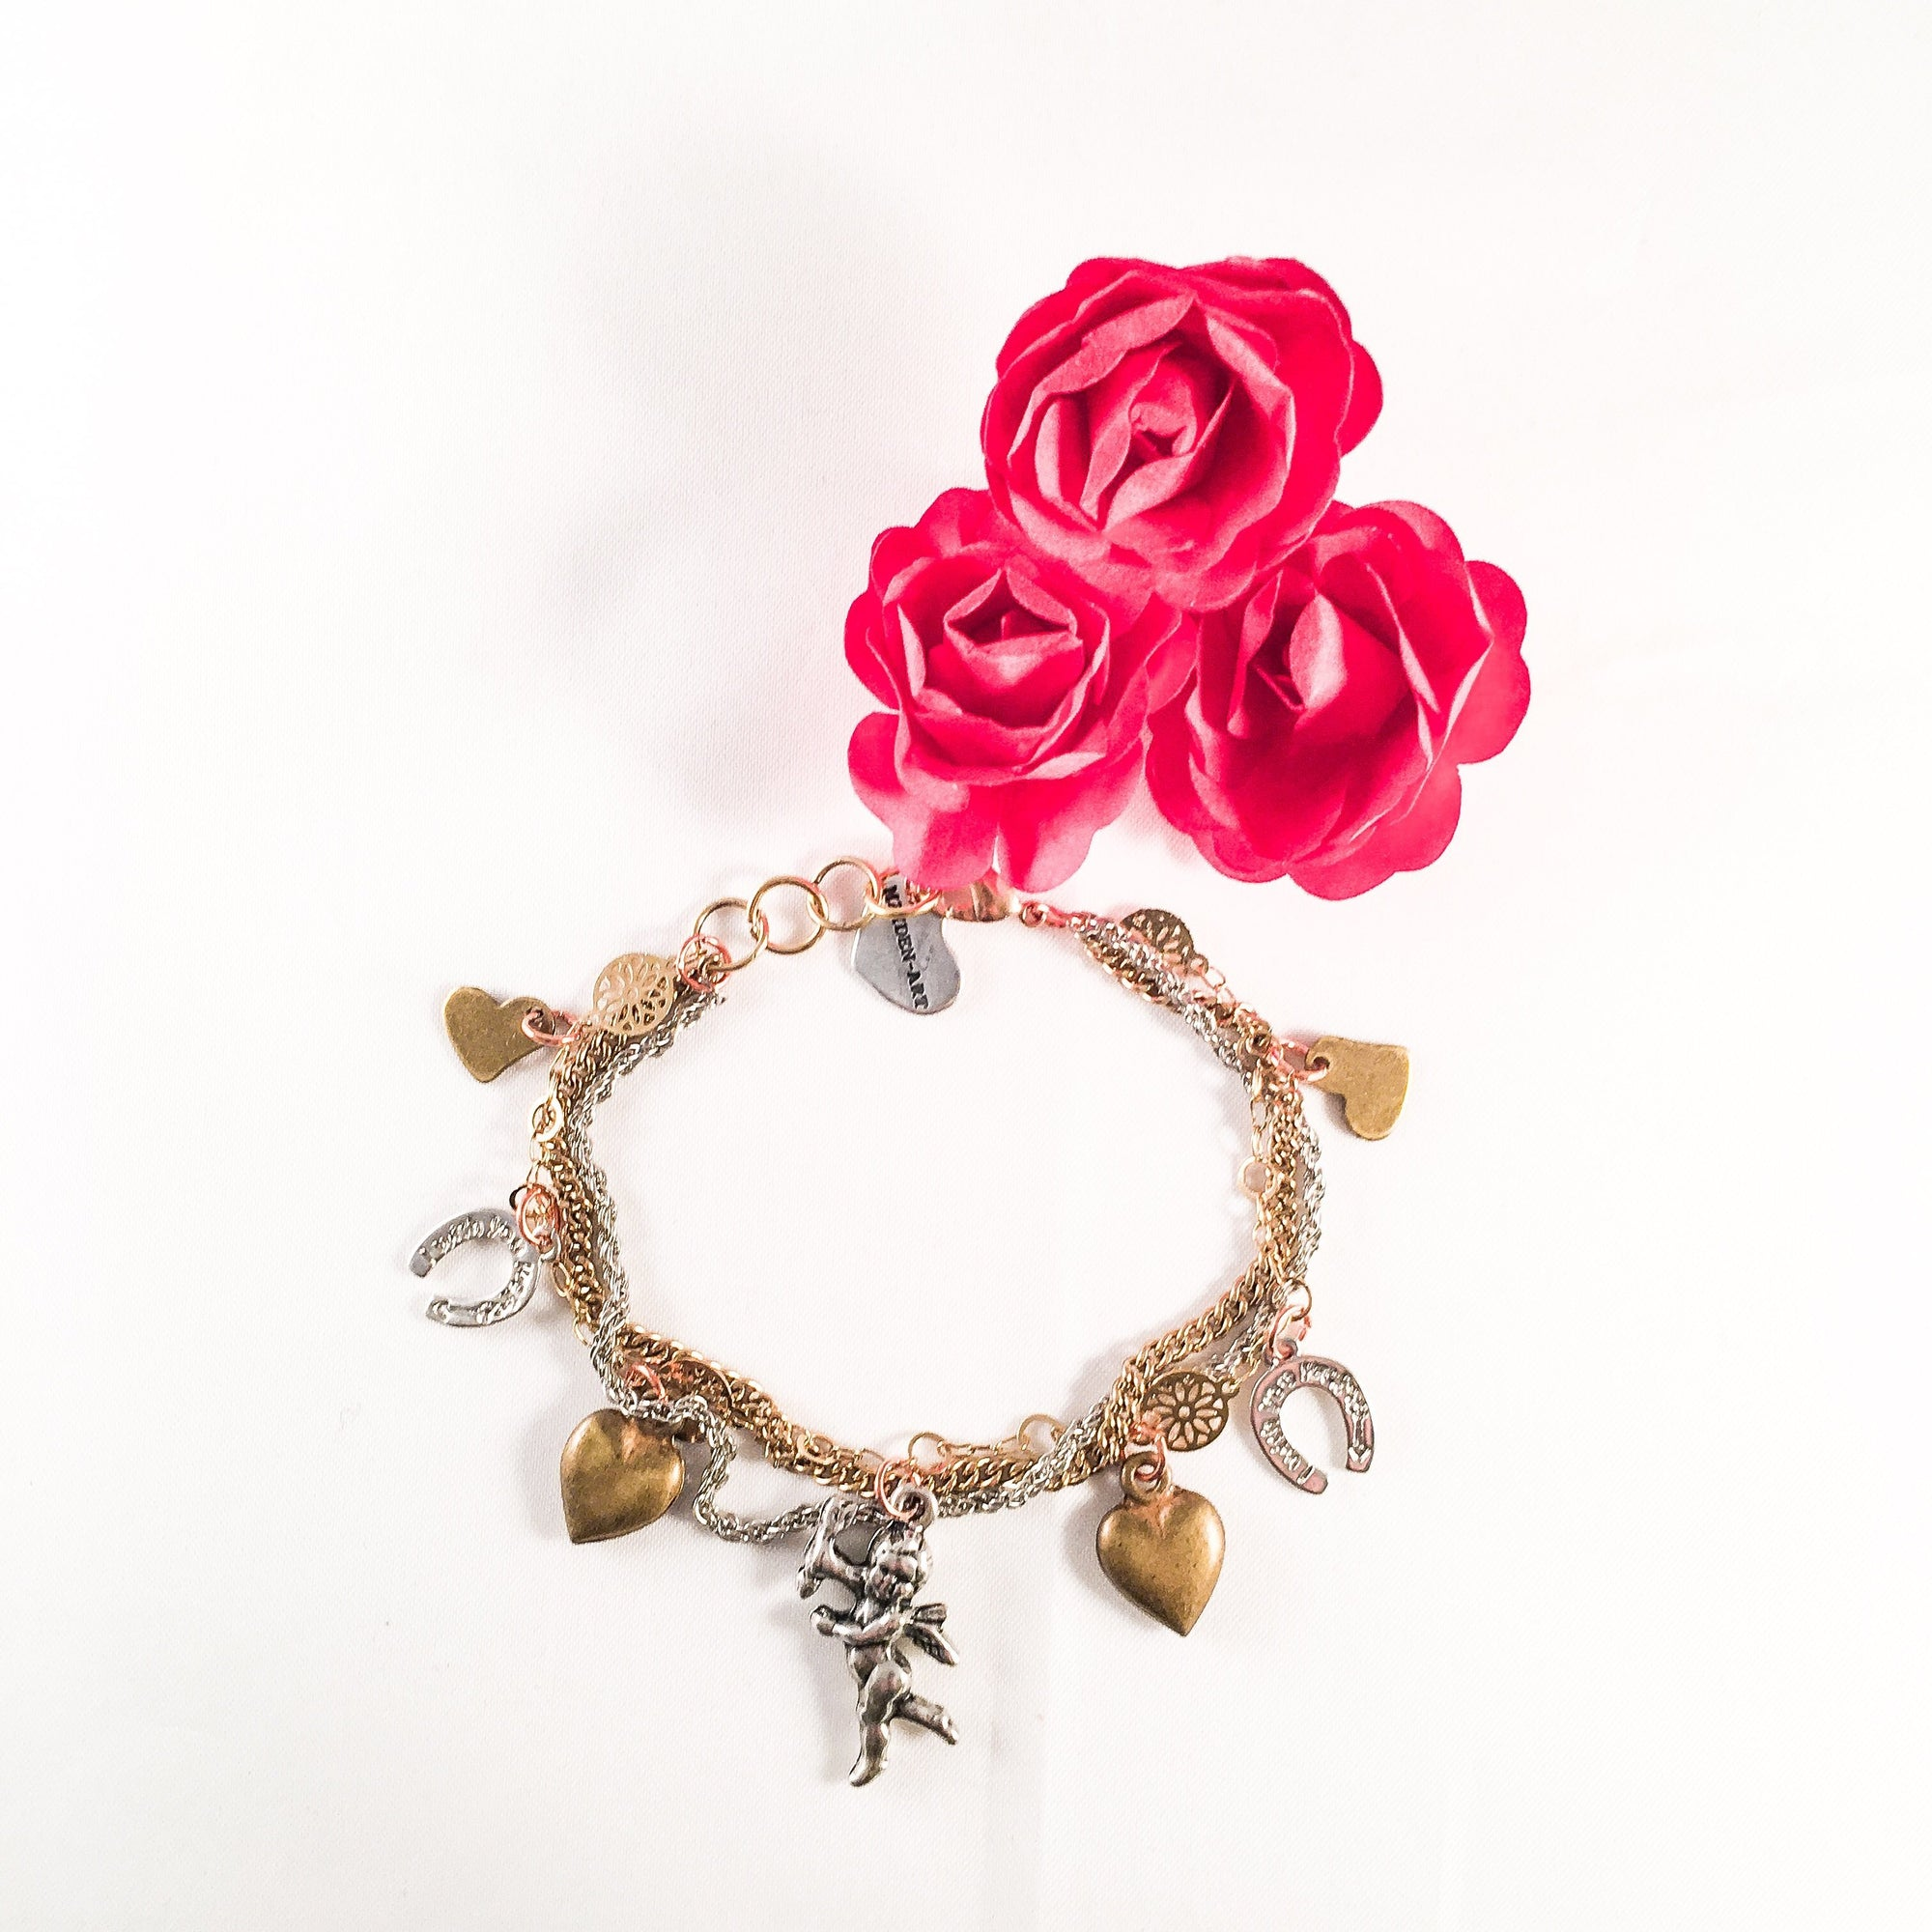 Heart and Cherub Multi-Charms Bracelet - Miraposa